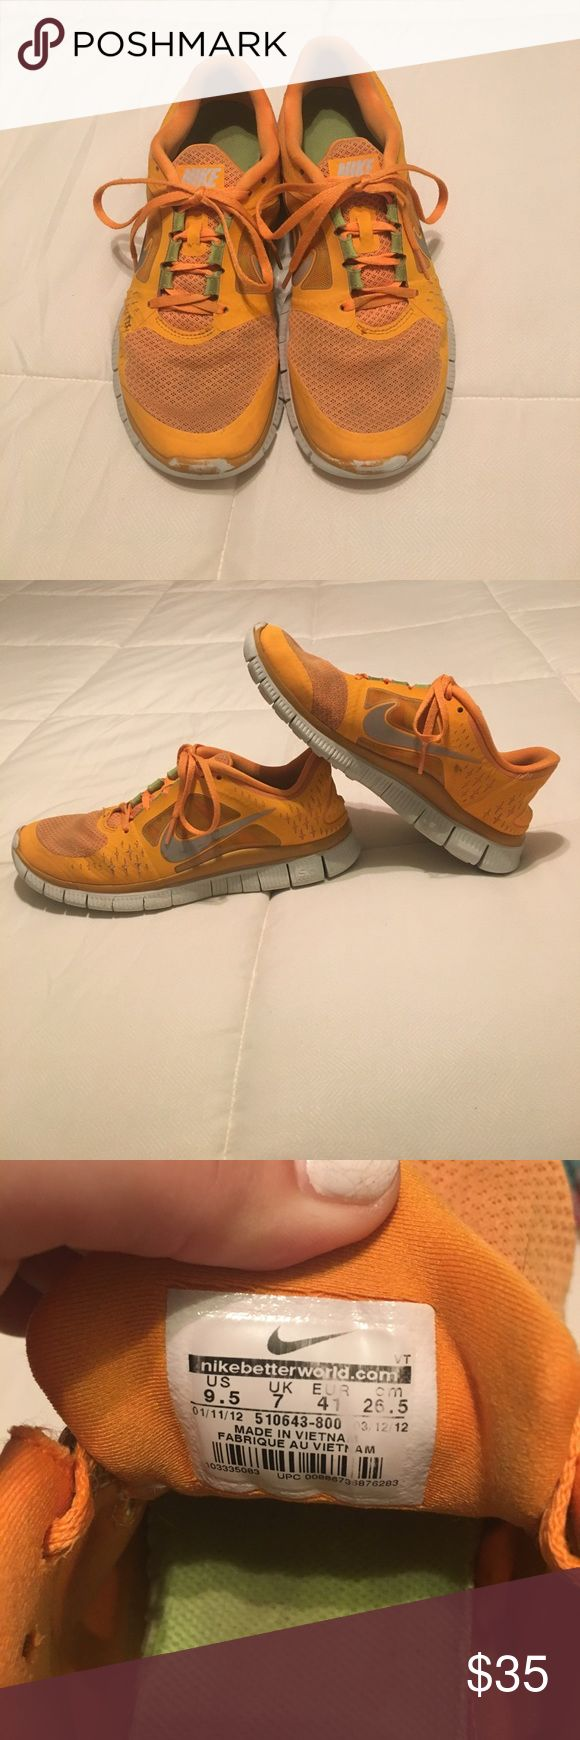 Nike Free Run 3 5.0 Tennis Shoes Orange Nike tennis shoes. A few scuffs. Holds a Nike+ under the sole. Comfortable and true to size. Have reflectors in the Nike symbol. Size 9.5. Nike Shoes Athletic Shoes